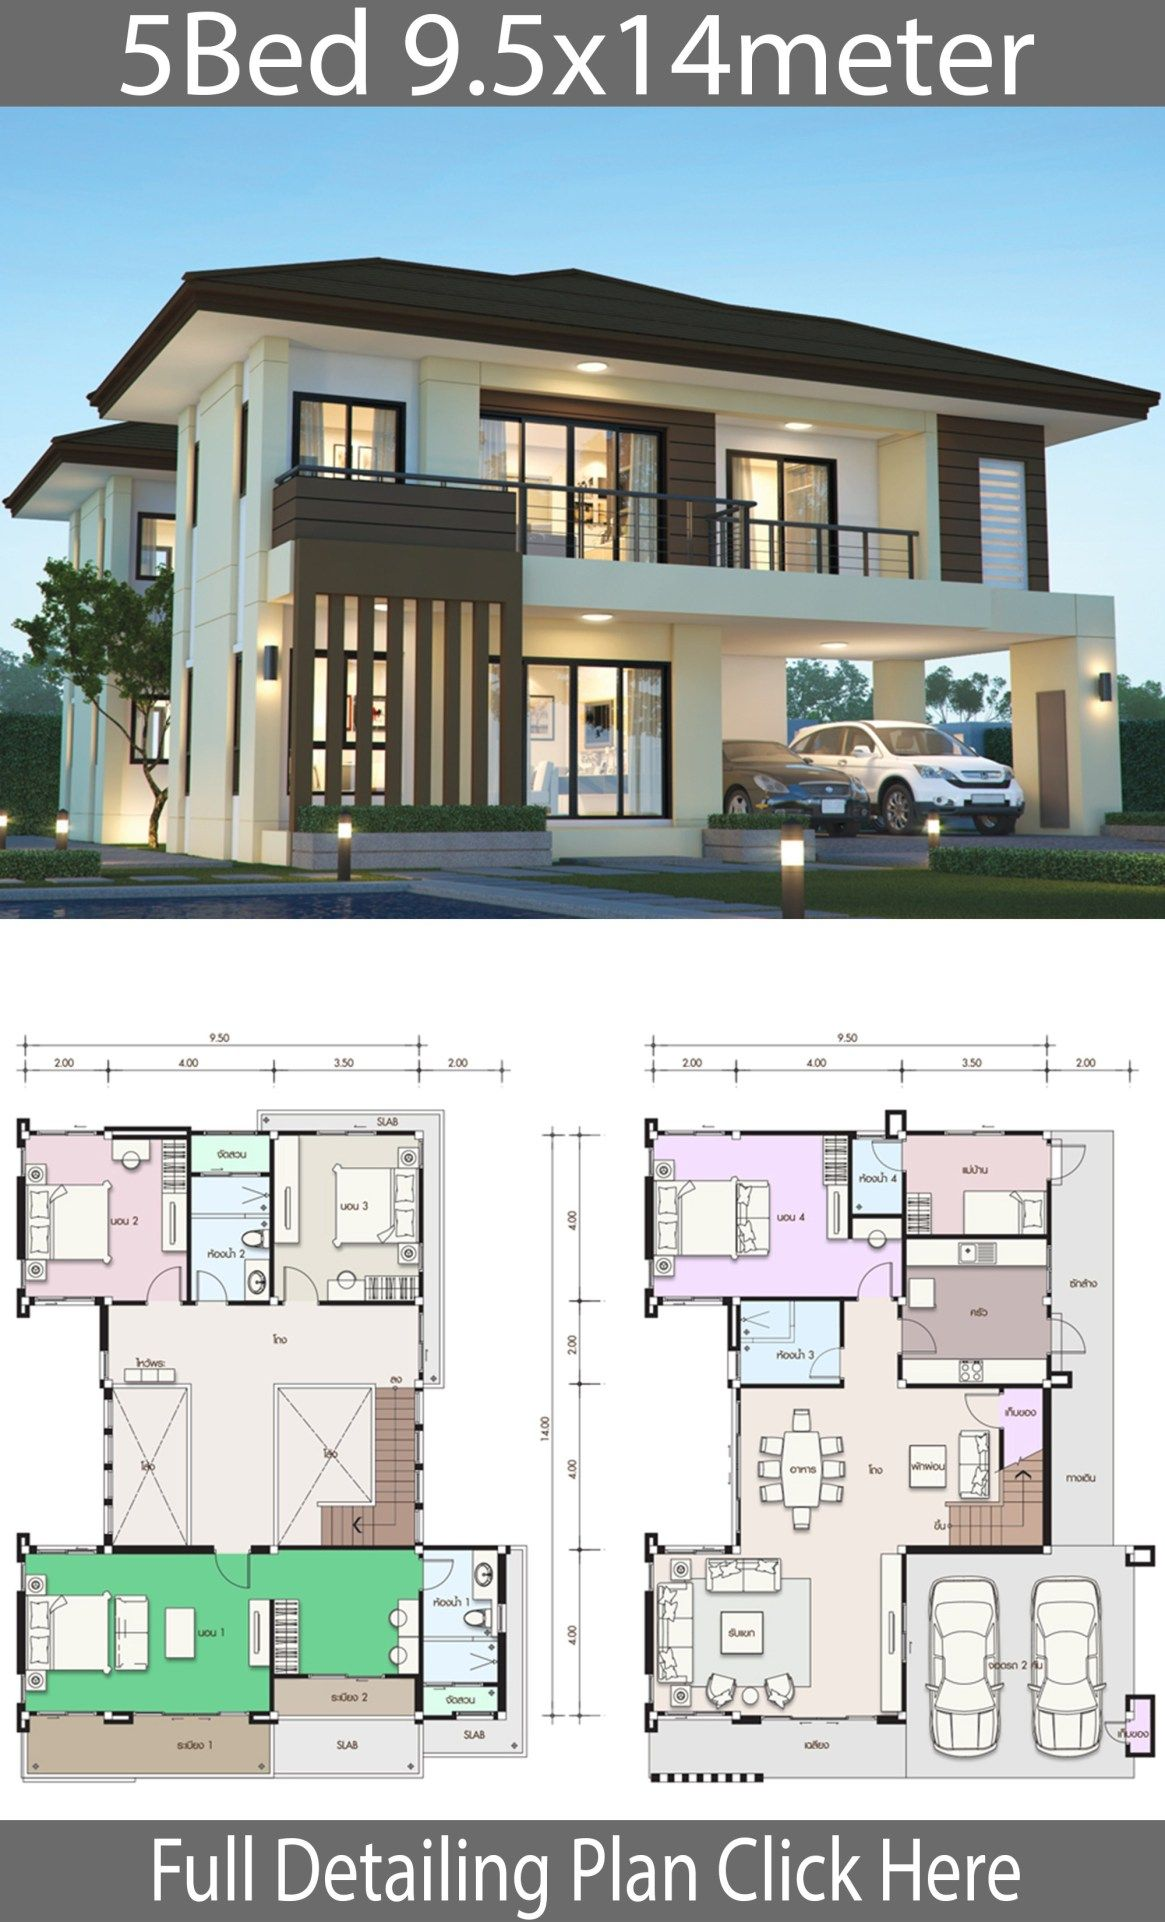 House Design Plan 9 5x14m With 5 Bedrooms Style Modern Tropicalhouse Description Number Of Floor 2 Storey House Design Model House Plan Affordable House Plans